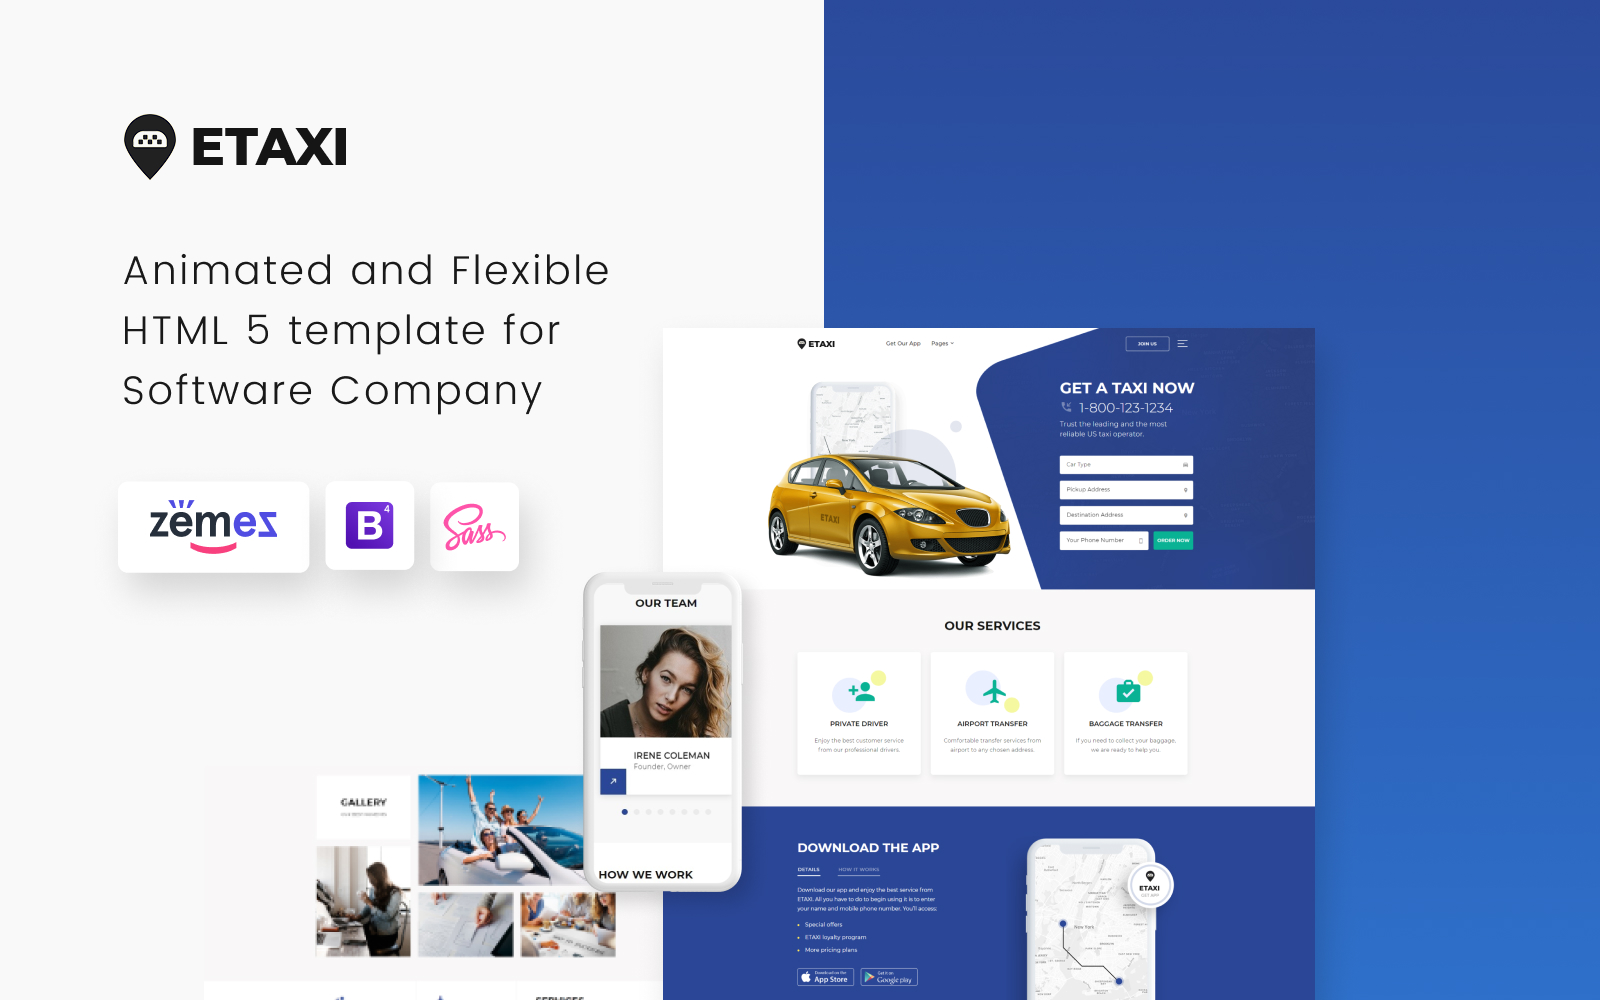 Etaxi - Taxi Company Responsive Website Template - screenshot